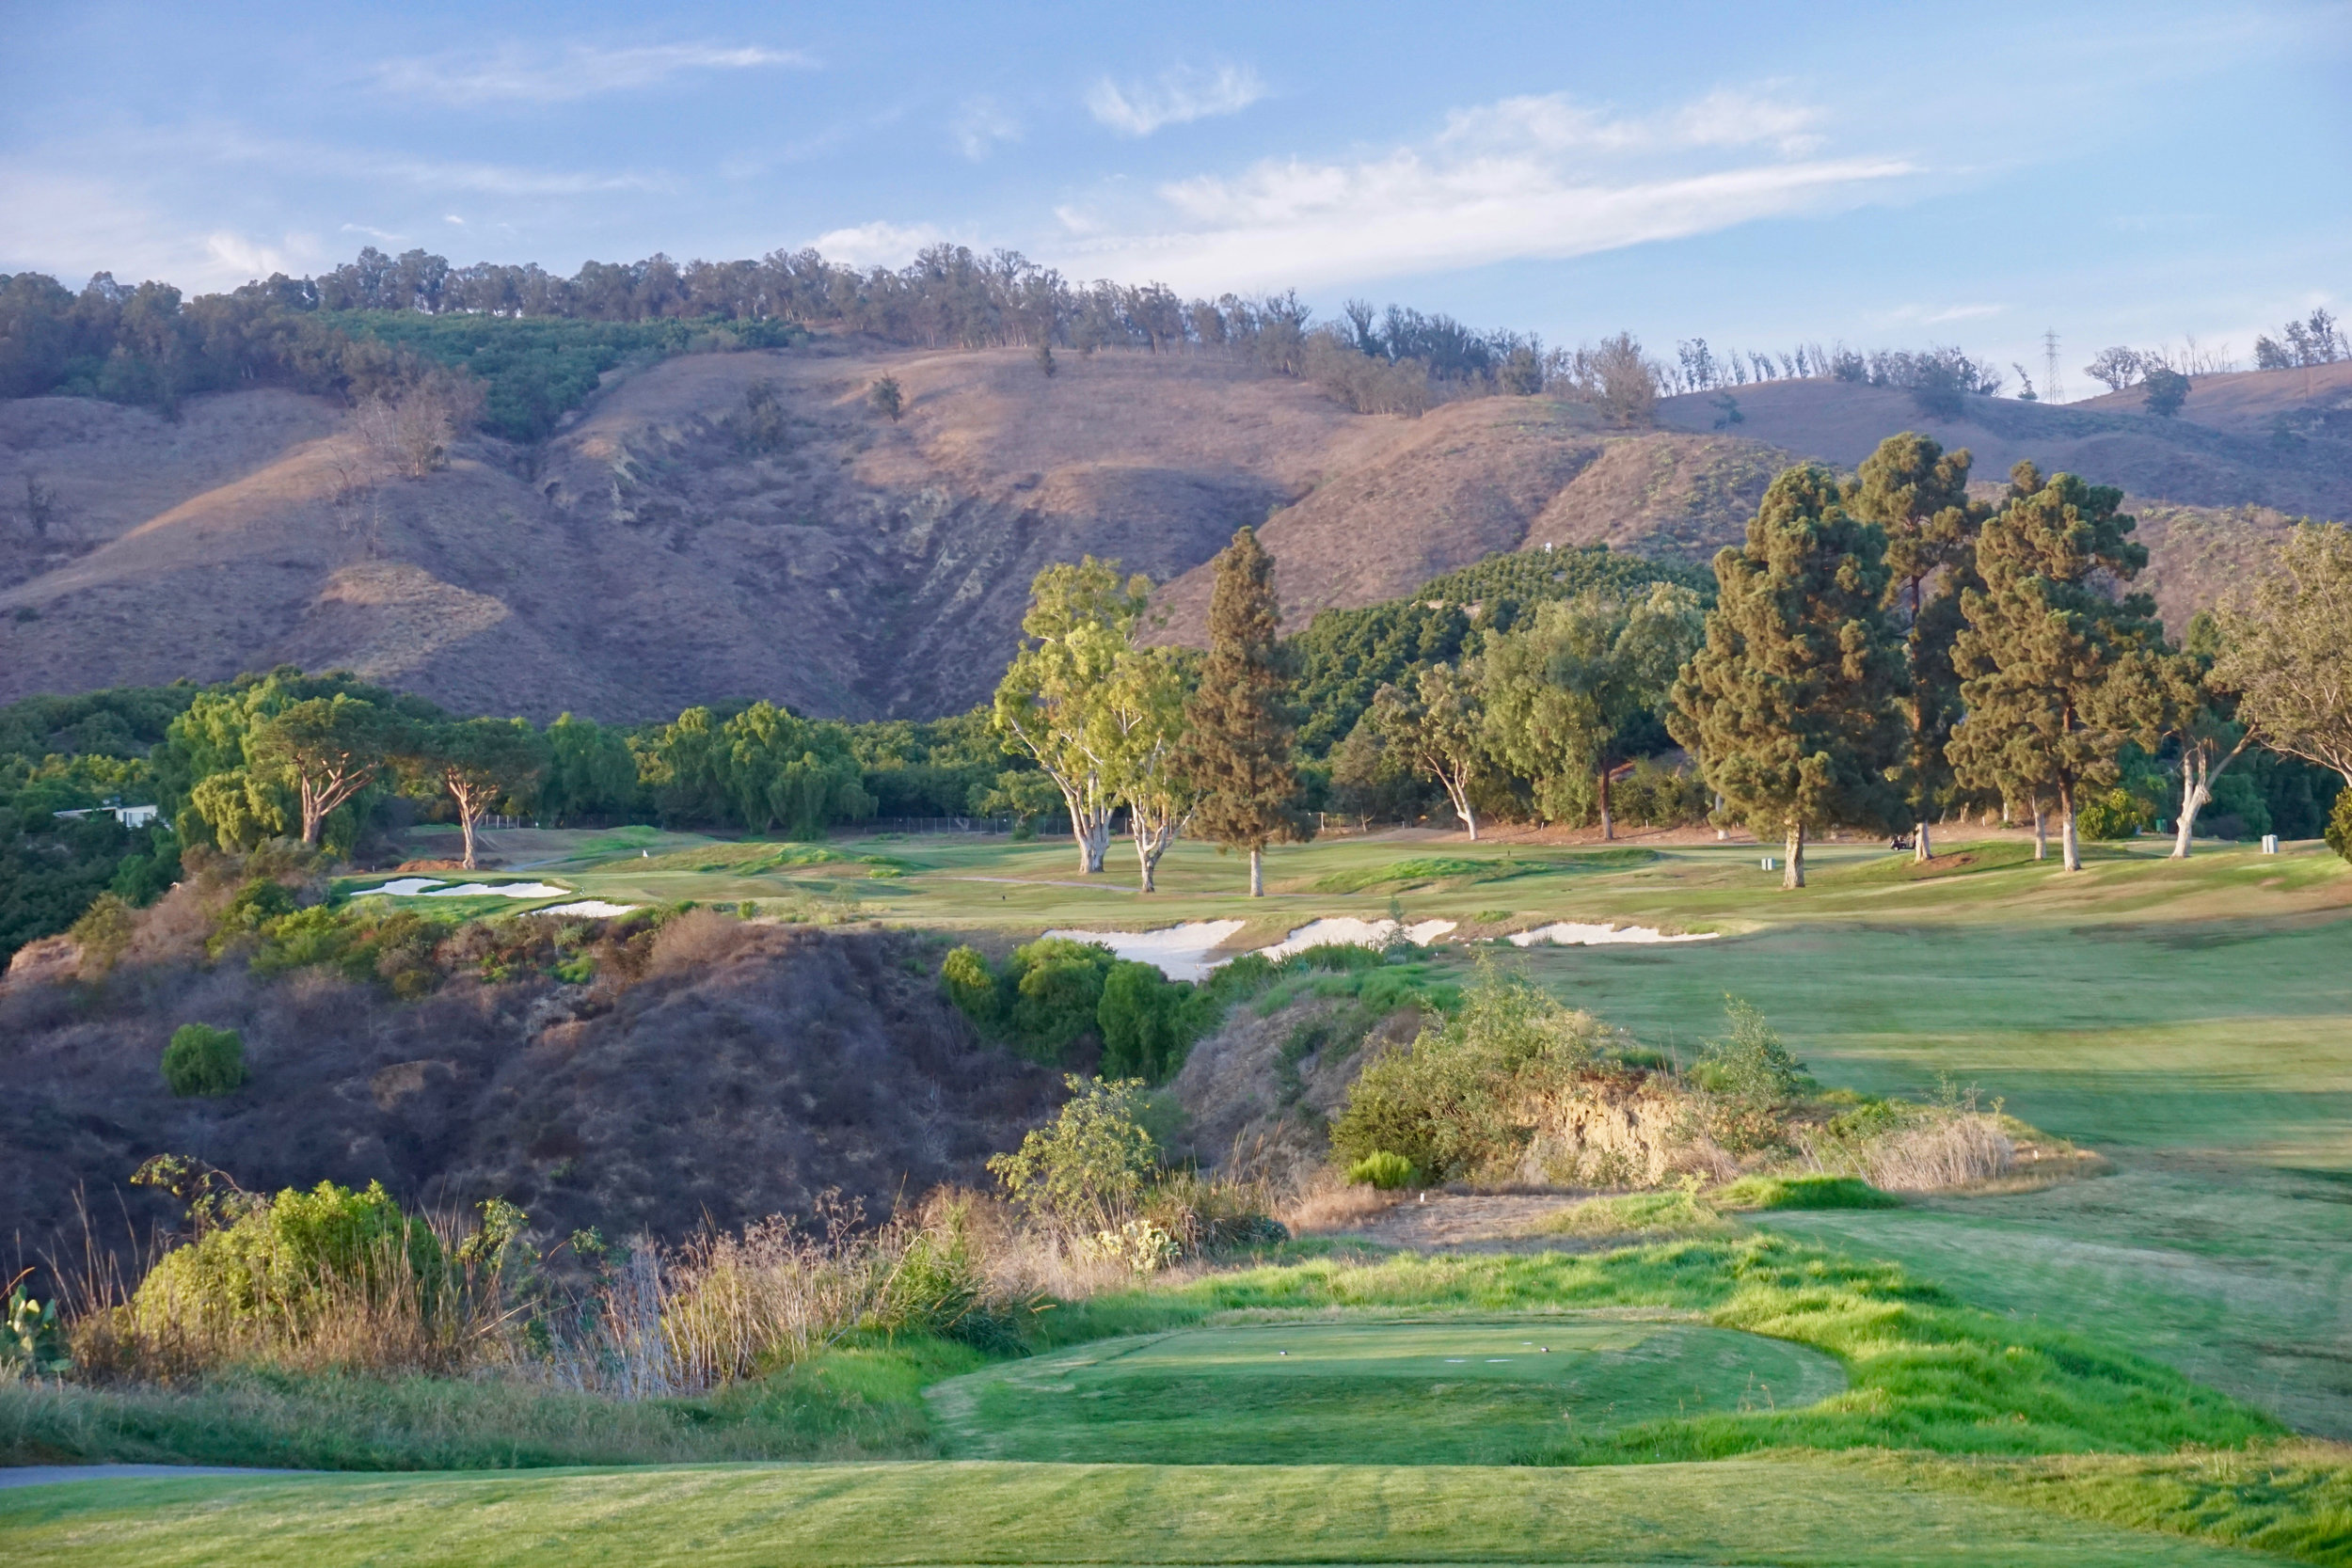 The dramatic canyon hole at Saticoy, No. 14. Here we reworked the left greenside bunker, flipped the back bunker short and left, filled in the right greenside bunker and replaced it with short grass, and added the giant canyon bunker feature at the corner of the dogleg.